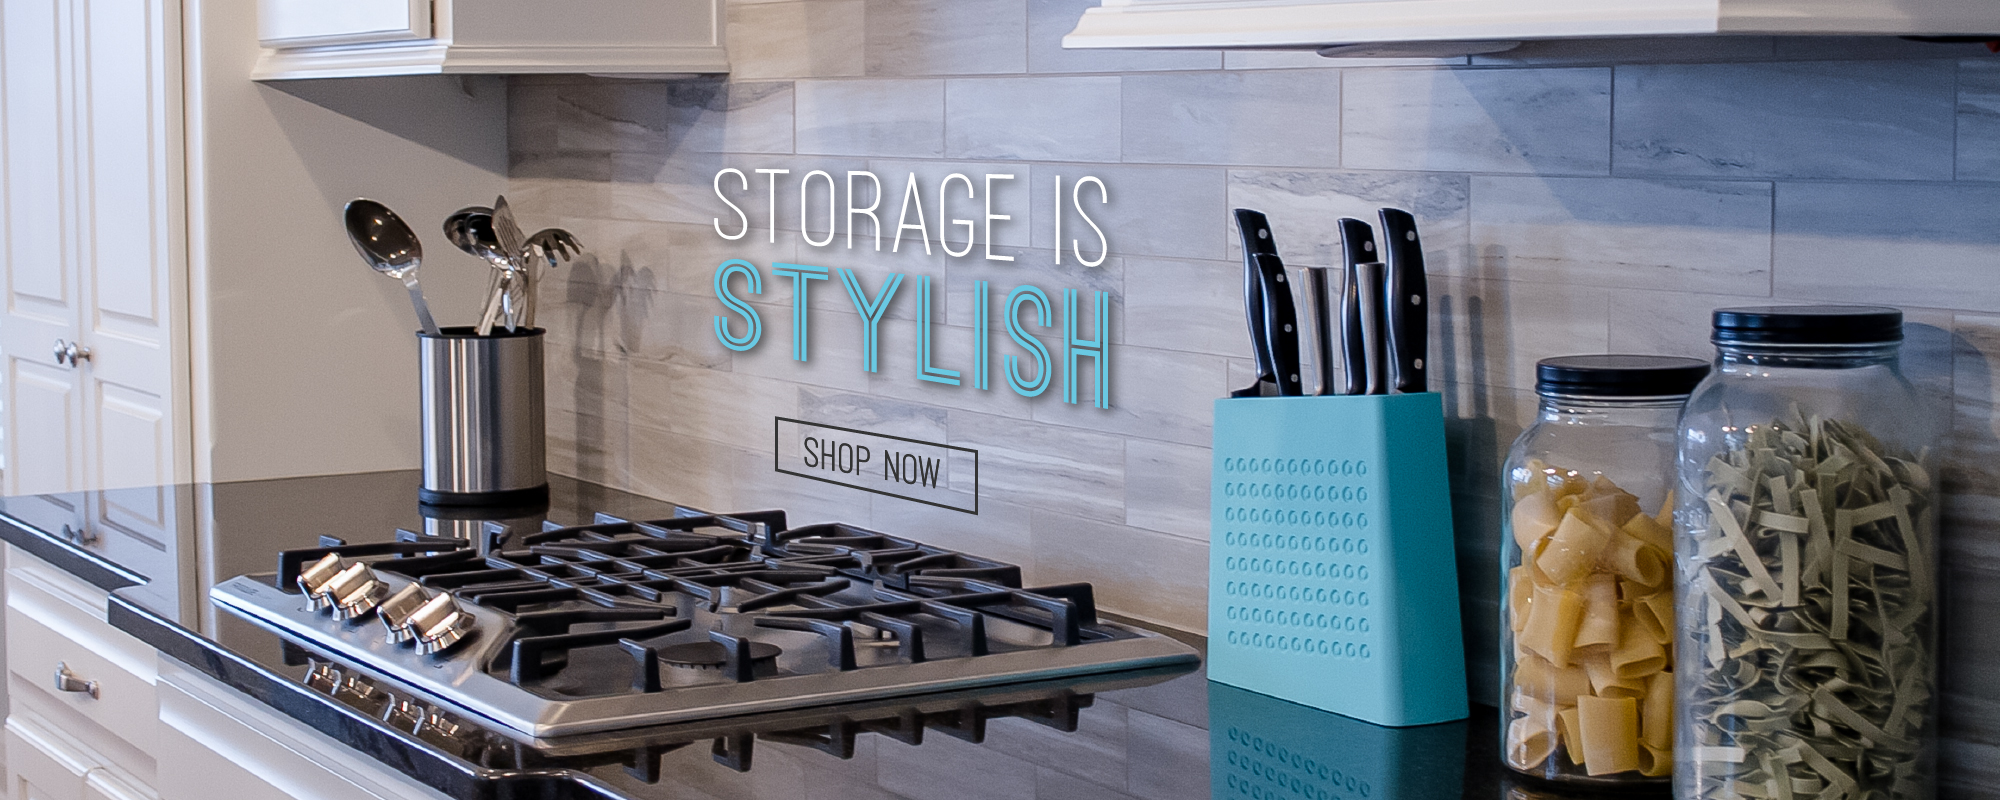 Storage is Stylish | Kapoosh Urban